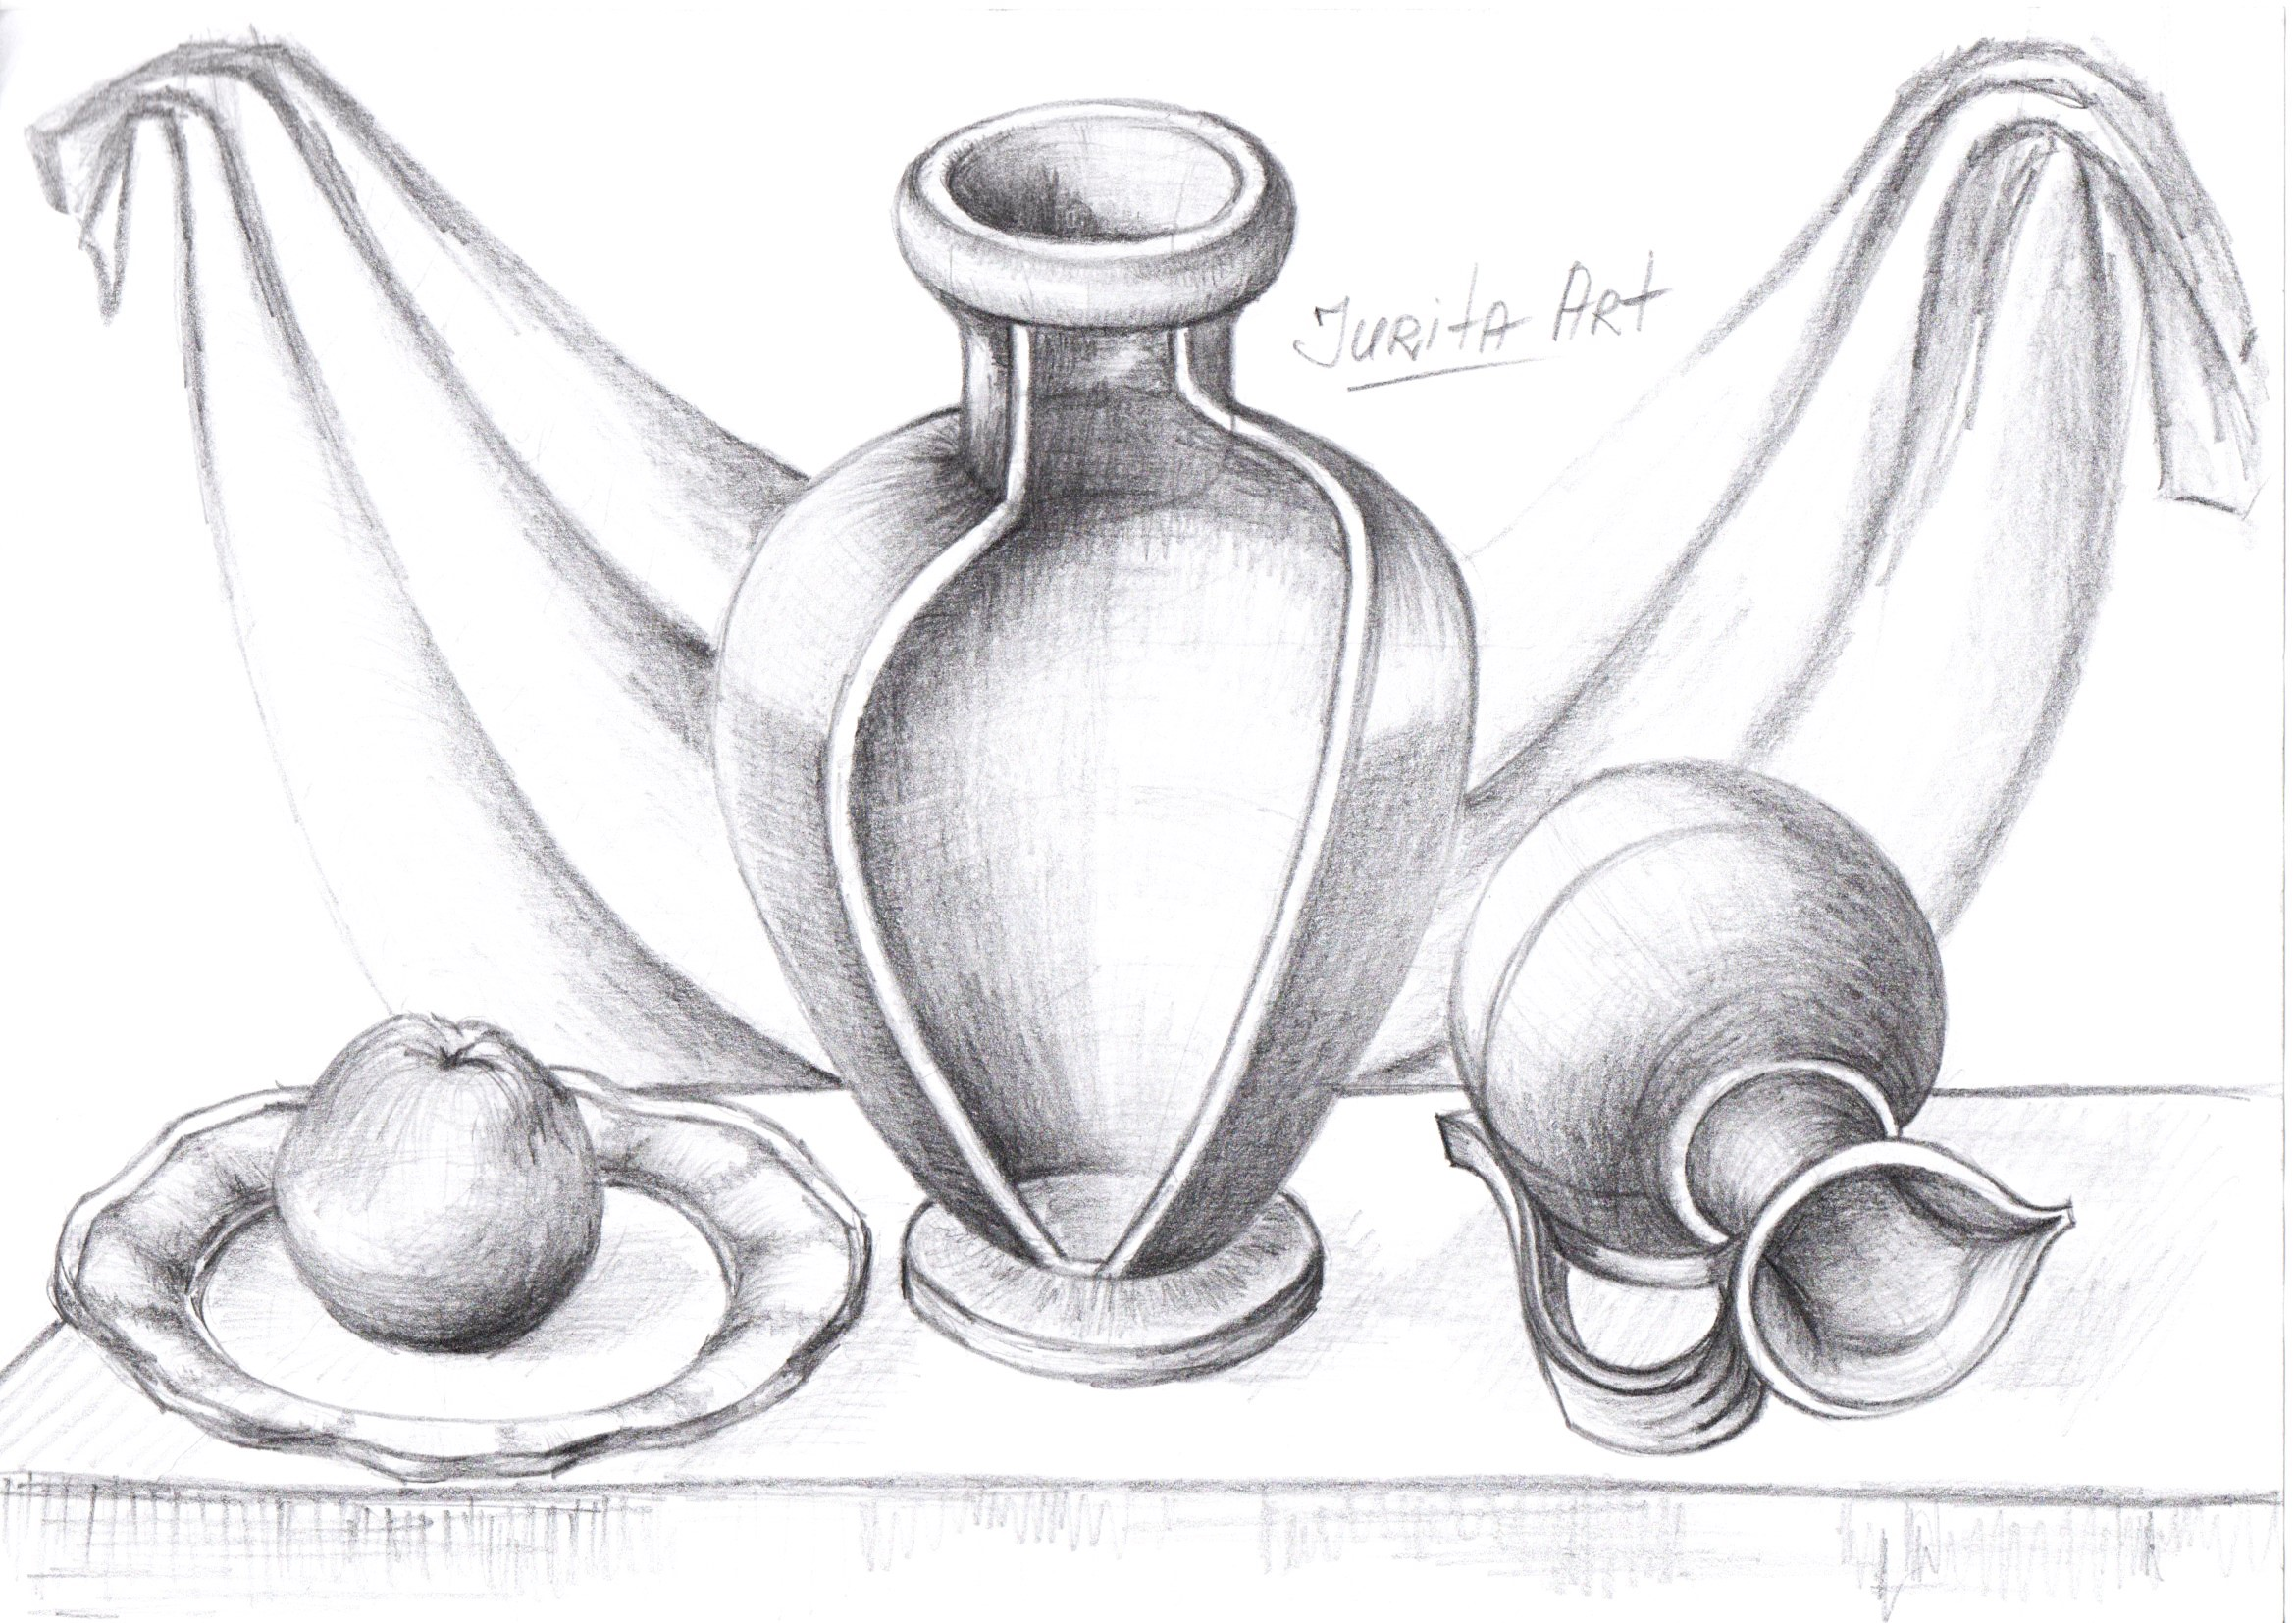 Basic Skills Pencil Drawing Techniques By Jurita Agsa Art C Jurita Agsa Art